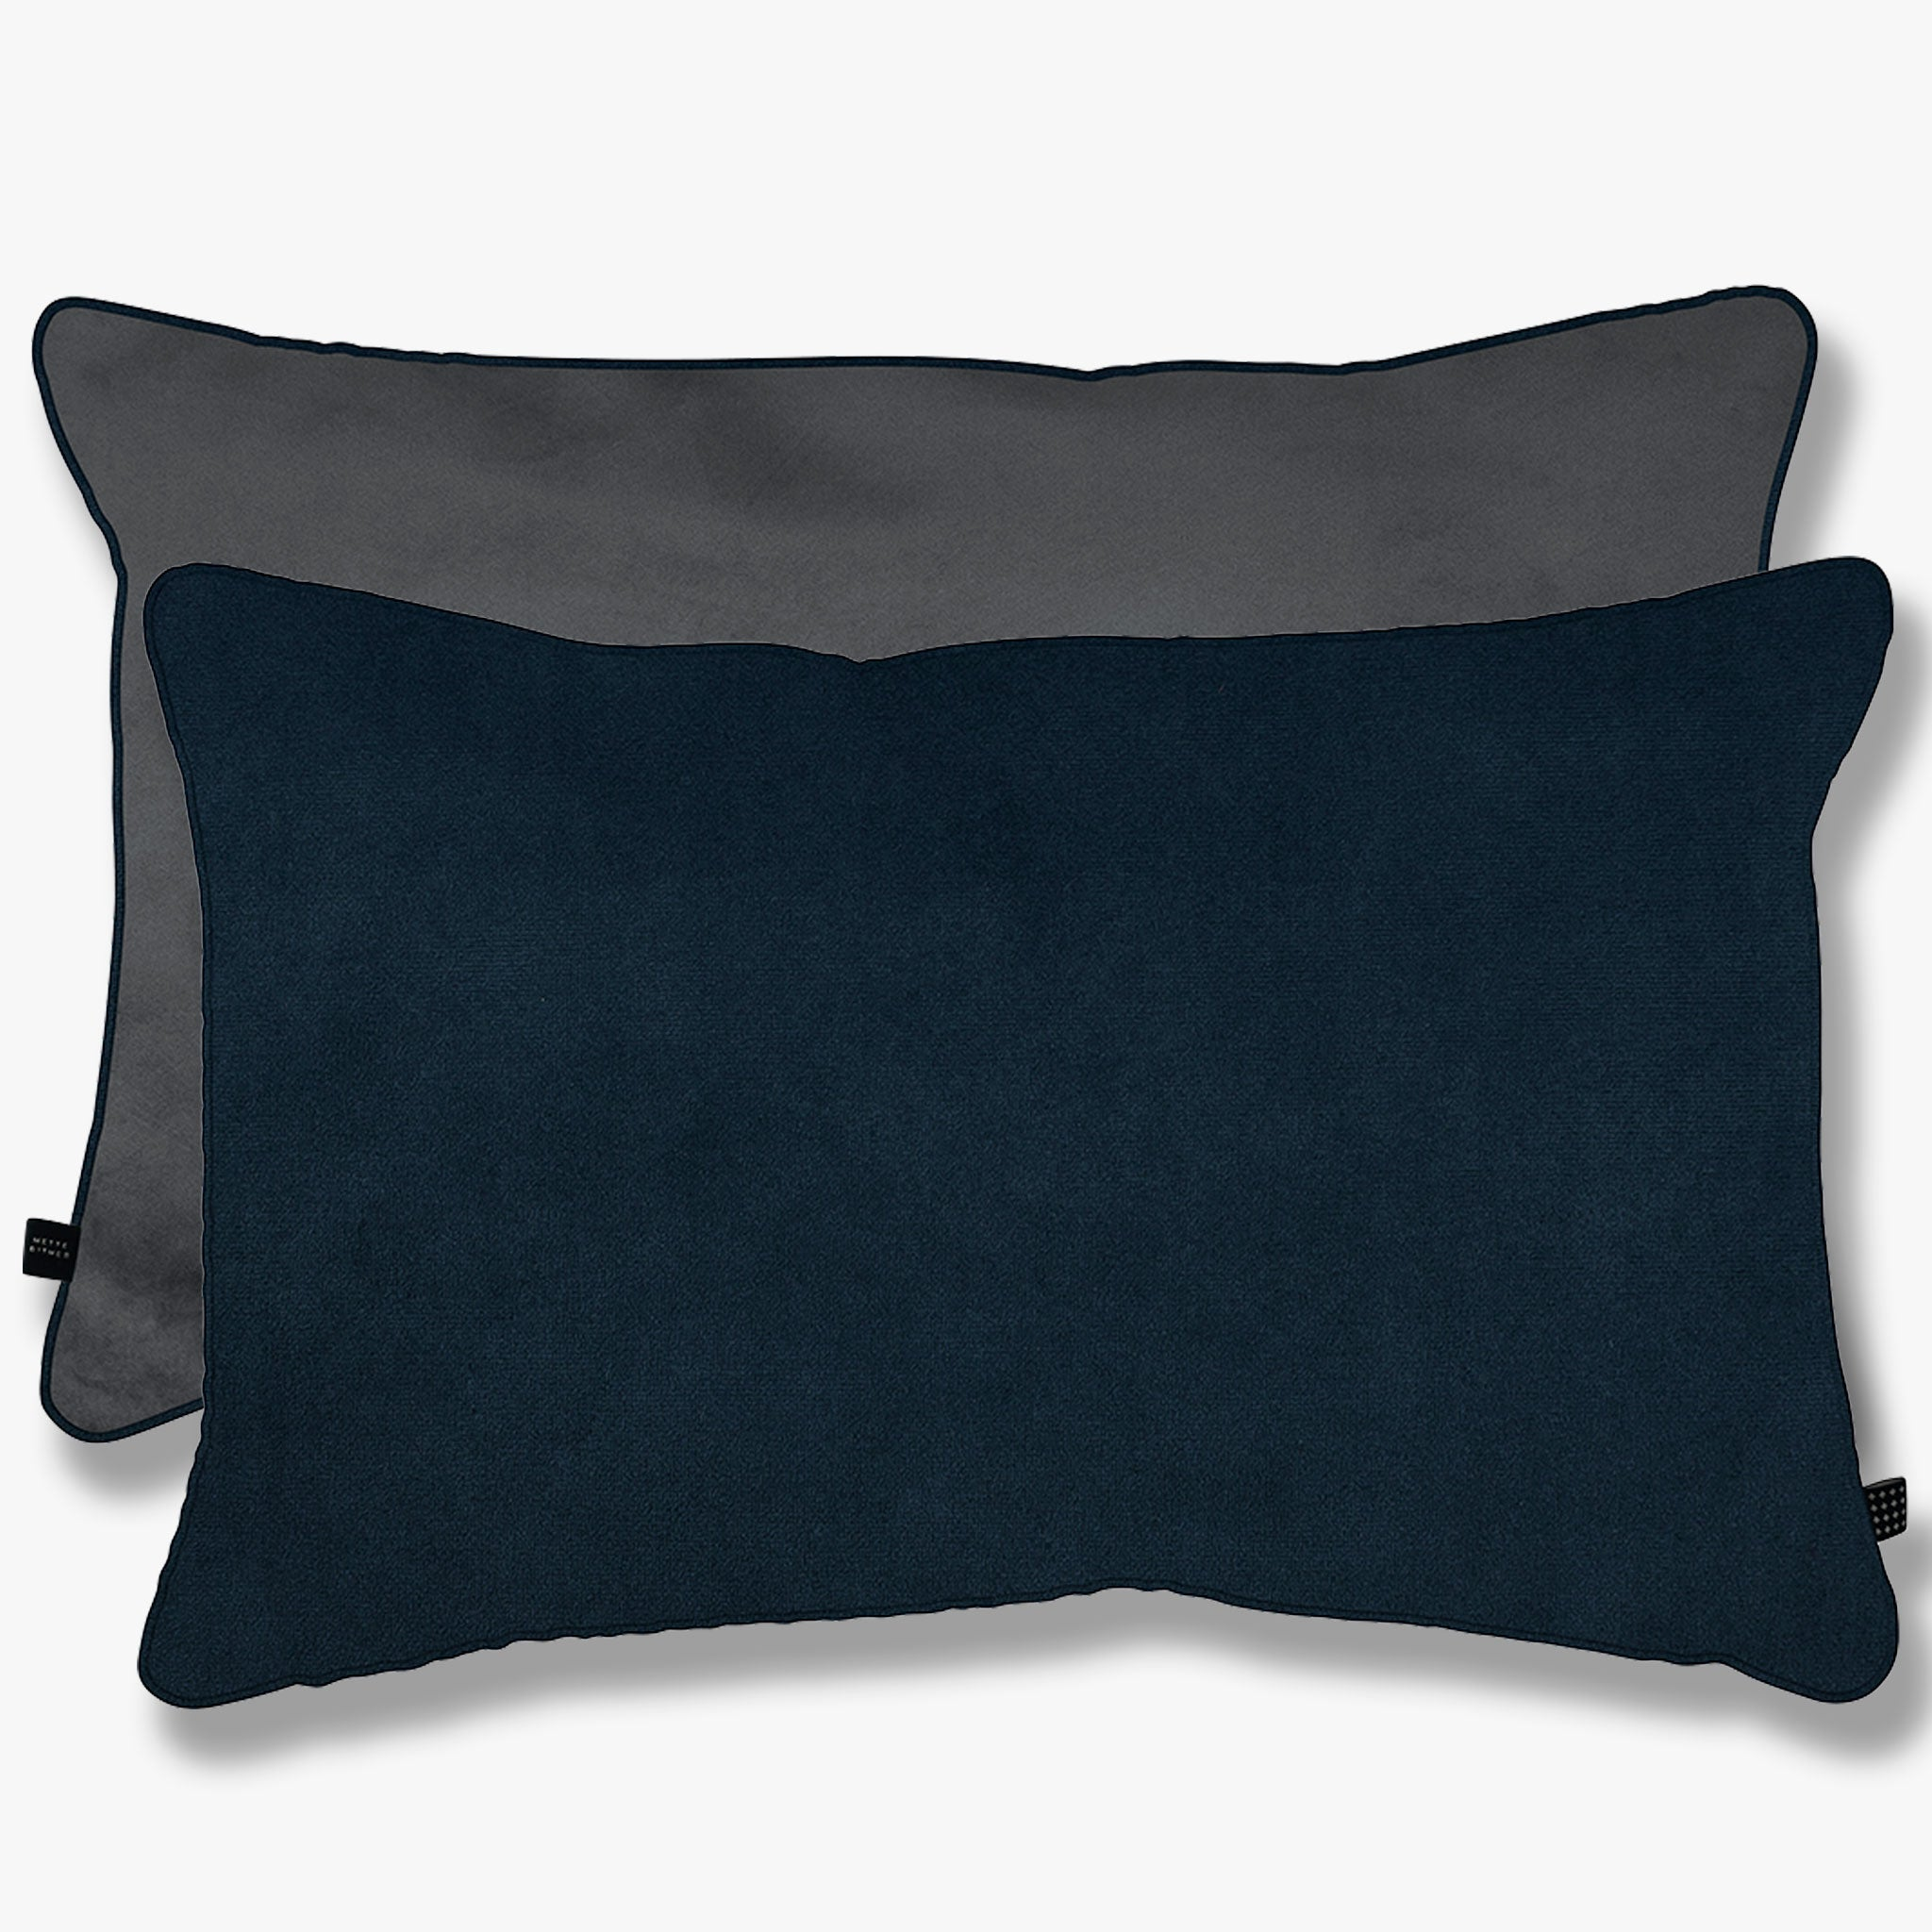 BLOCK Pude, dark blue/grey